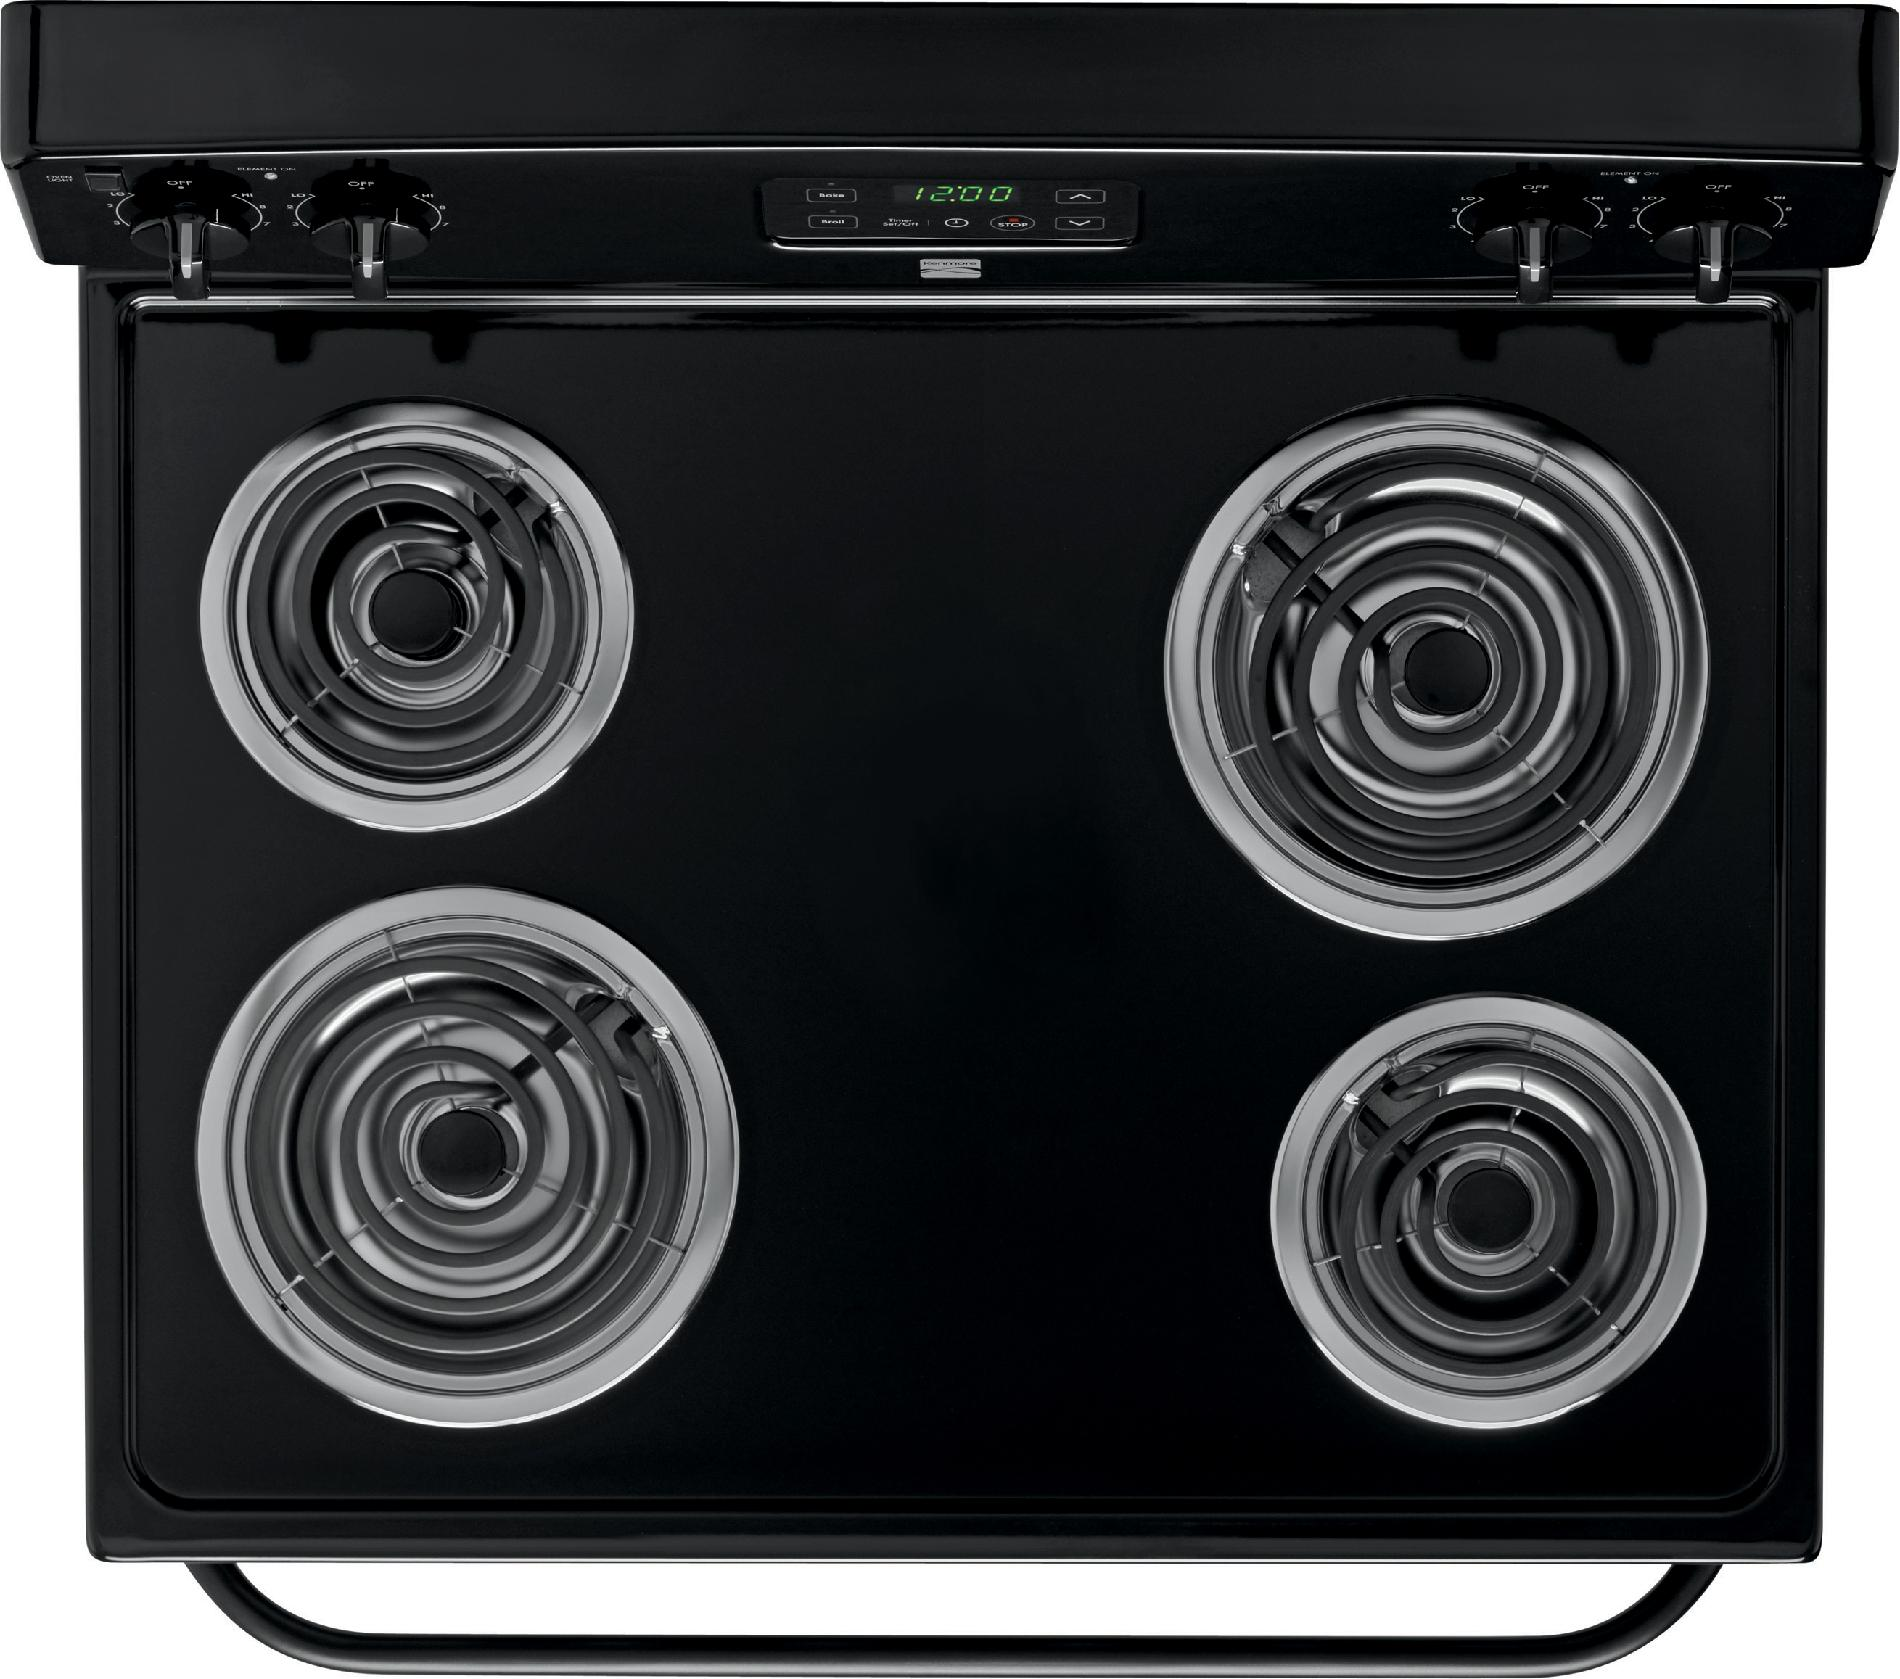 Kenmore 93003 4.9 cu. ft. Electric Range - Stainless Steel